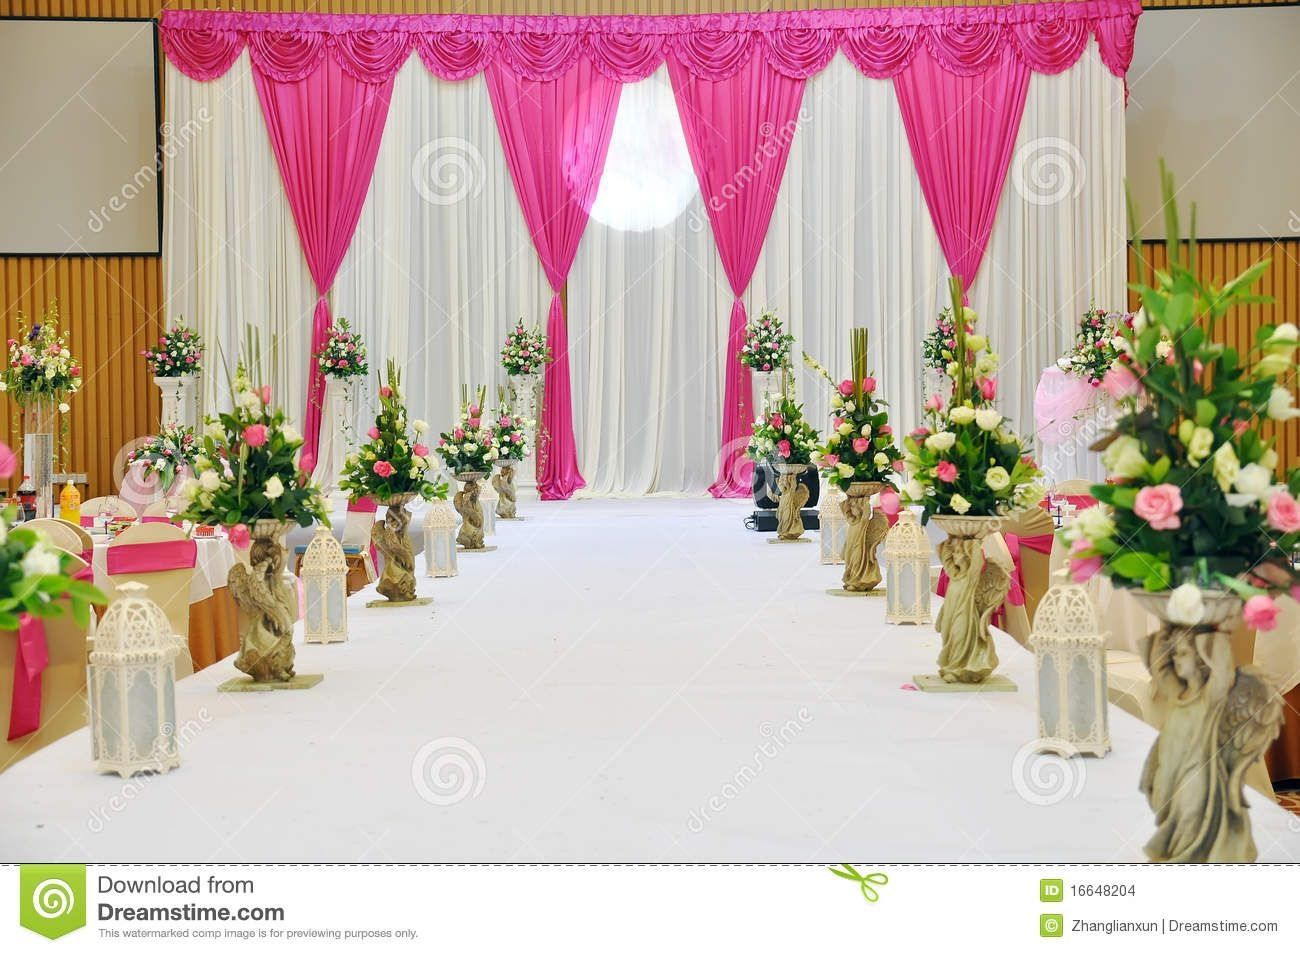 Stage Decoration For Christian Wedding Reception Planning Ideas And Inspiration Wedding Stage Wedding Reception Planning Wedding Decorations